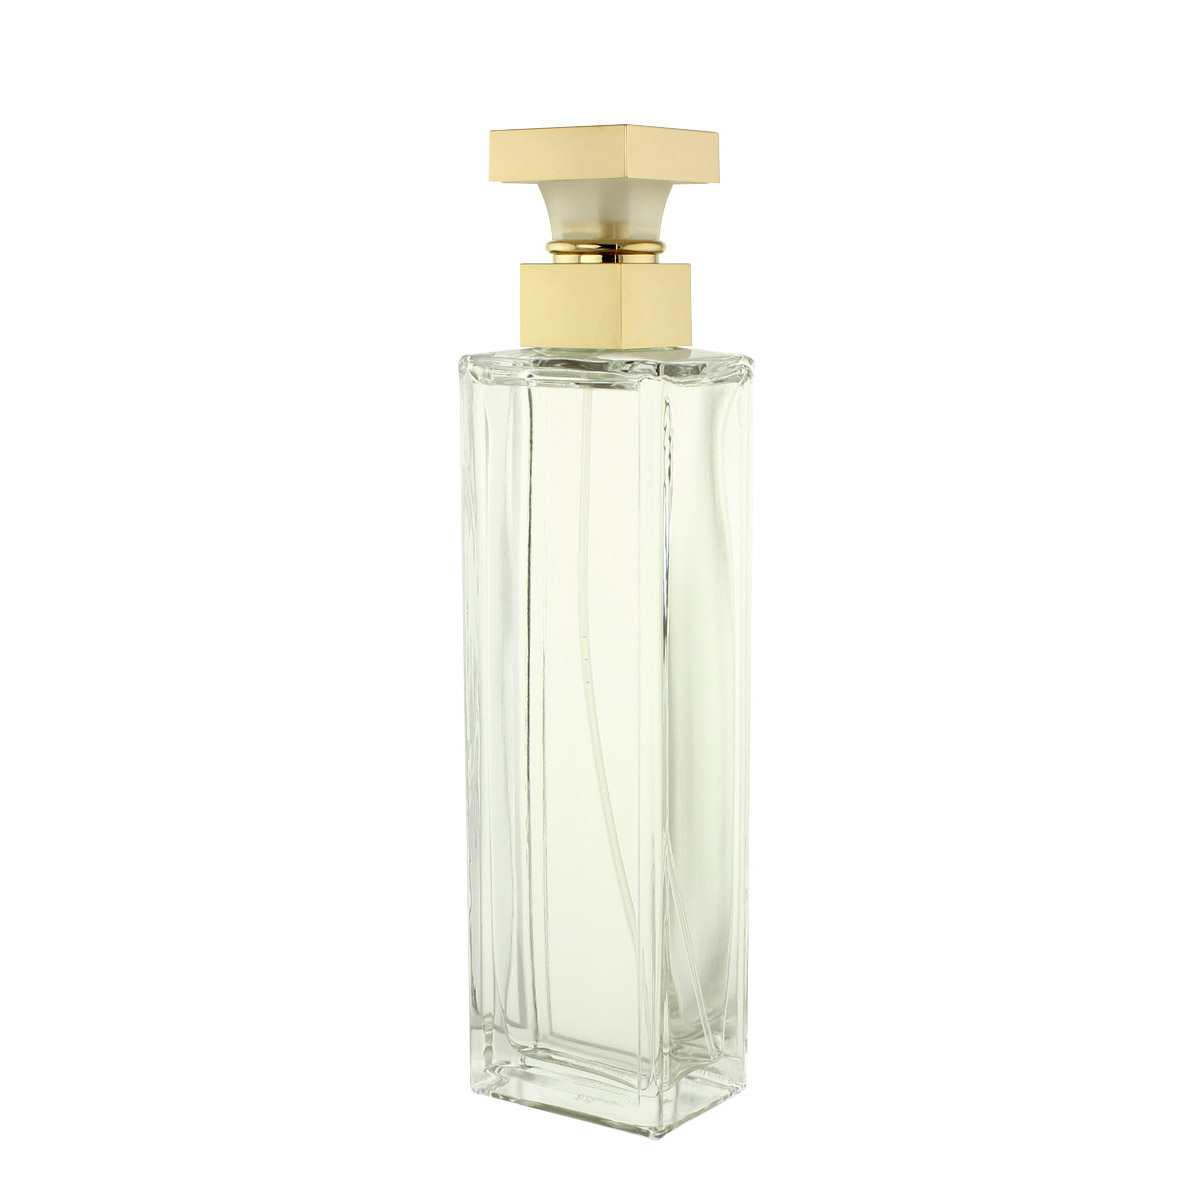 Elizabeth Arden 5th Avenue After Five EDP tester 125 ml W